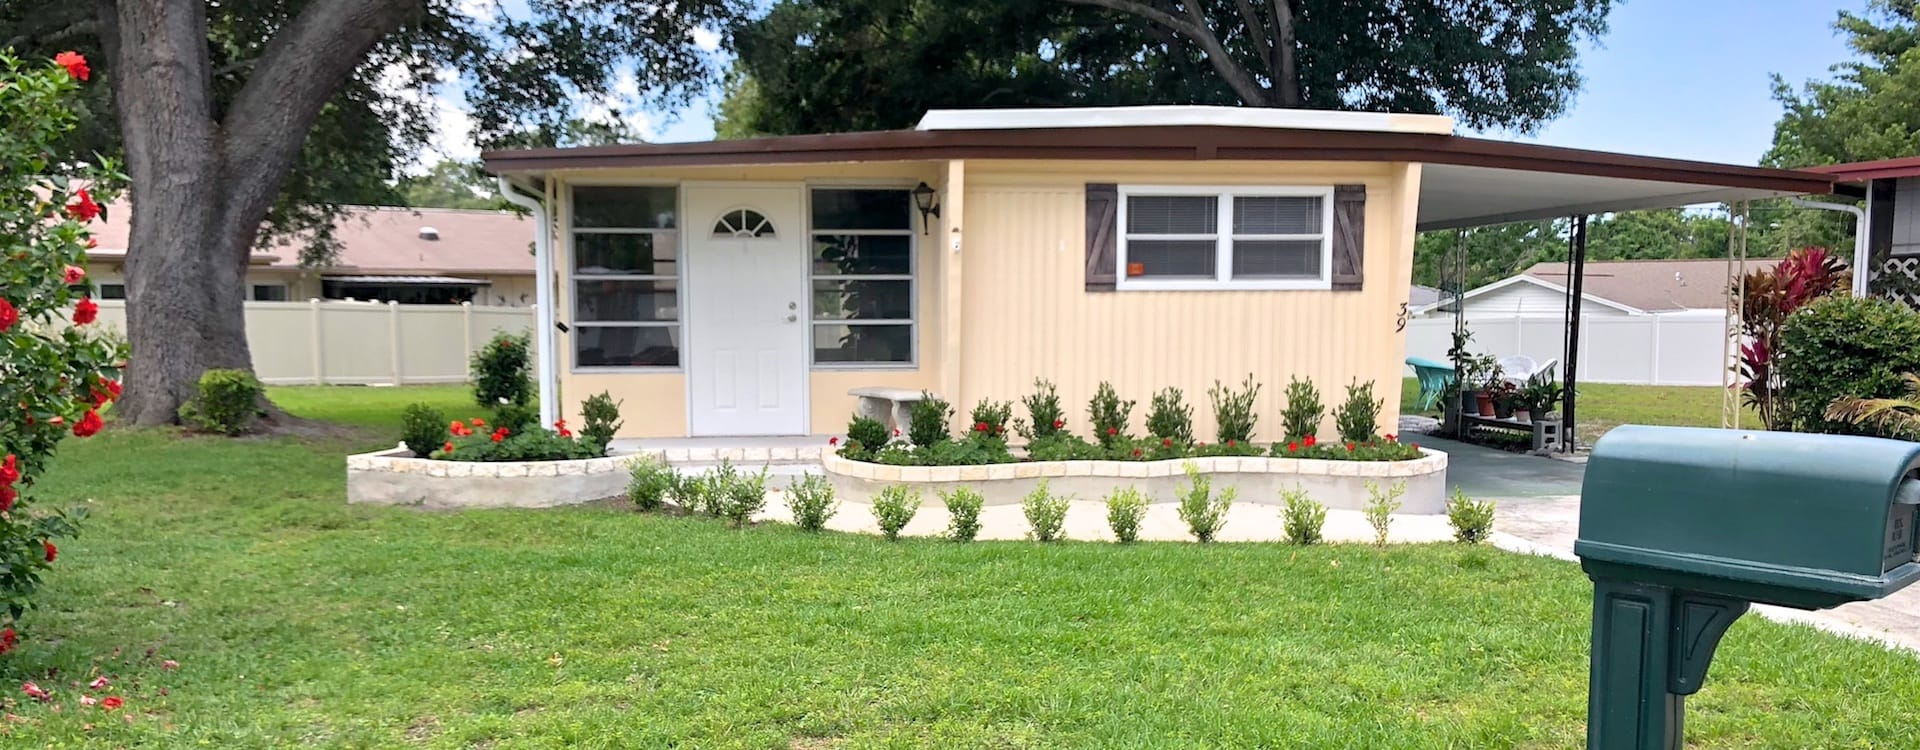 mobile-home-for-sale-20180523-001-Wide Mobile Home Parks Clearwater Fl on rent clearwater fl, city of clearwater fl, mobile home parks seminole florida, mobile home in clearwater florida, queen fleet deep sea fishing clearwater fl, restaurants clearwater fl, mobile home 55 plus communities, apartments clearwater fl, mobile home parks bellingham wa, mobile home parks tampa florida area, mobile home park tampa fl, retirement communities clearwater fl, timeshares clearwater fl, churches clearwater fl, mobile home communities florida, clubs clearwater fl, mobile home parks largo florida, coachman park clearwater fl, mobile homes florida keys fl, home builders clearwater fl,